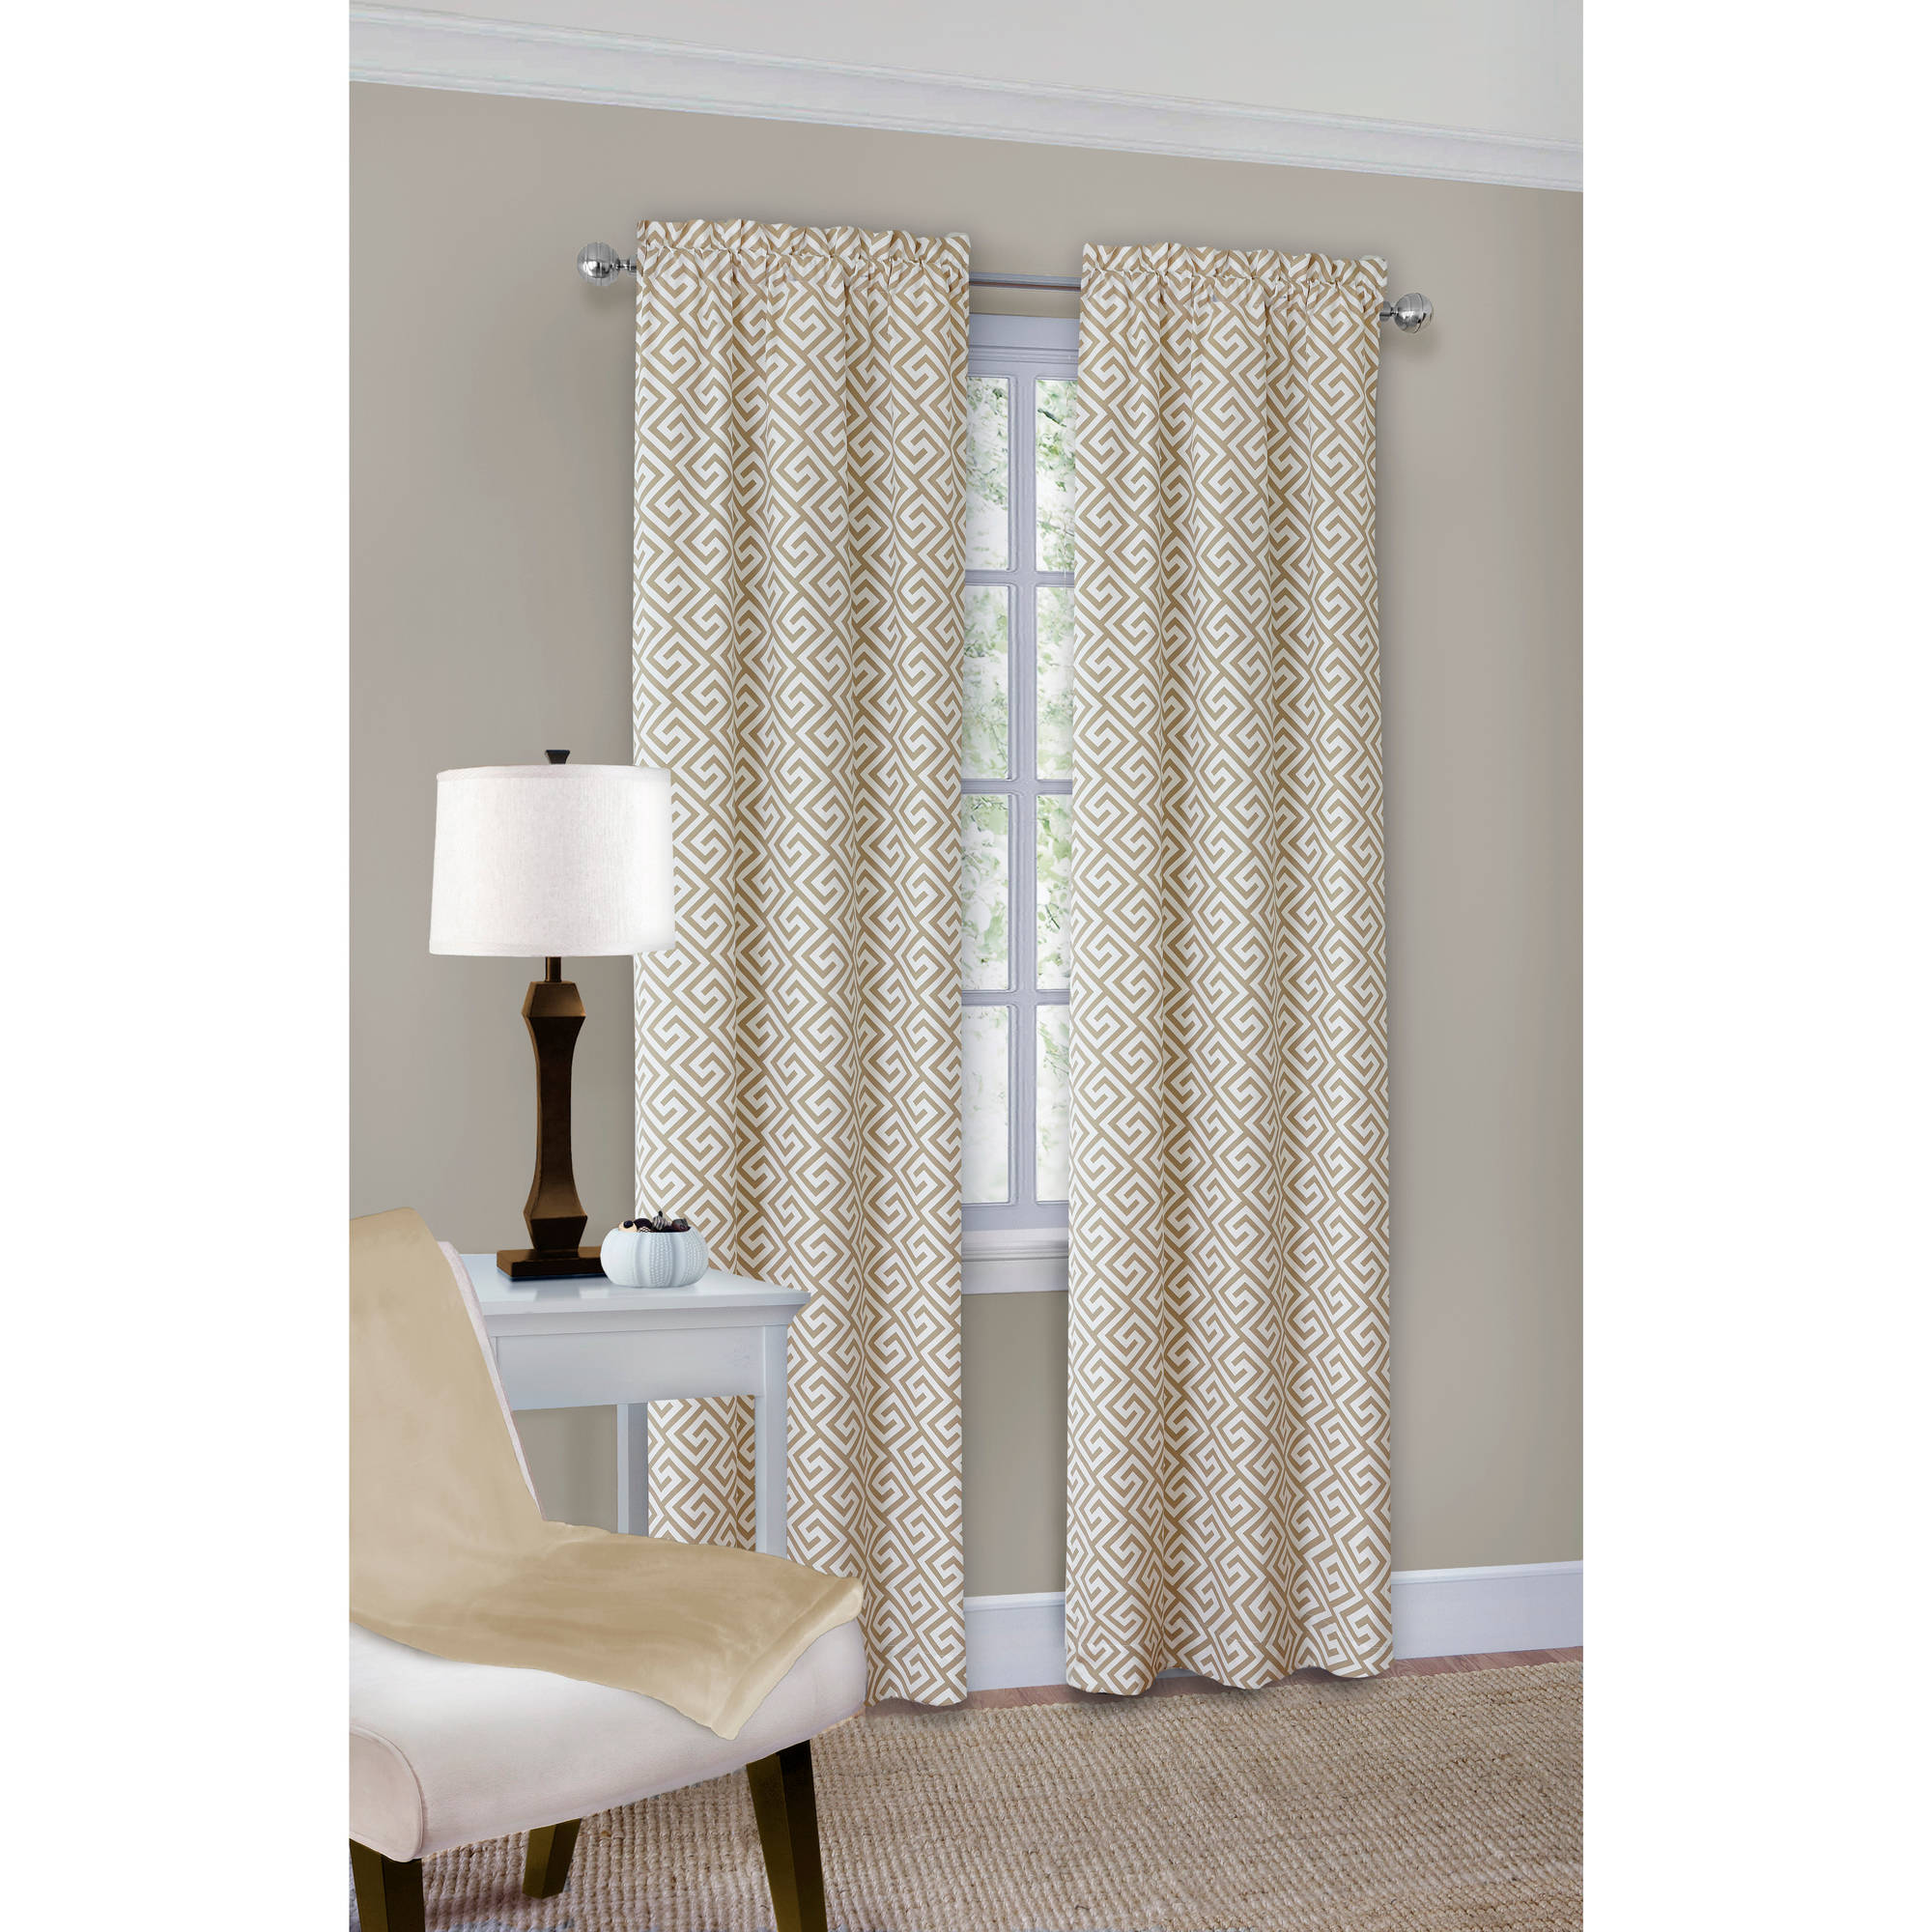 rod curtains classics crushed sheer full treatments curtain window home panels voile